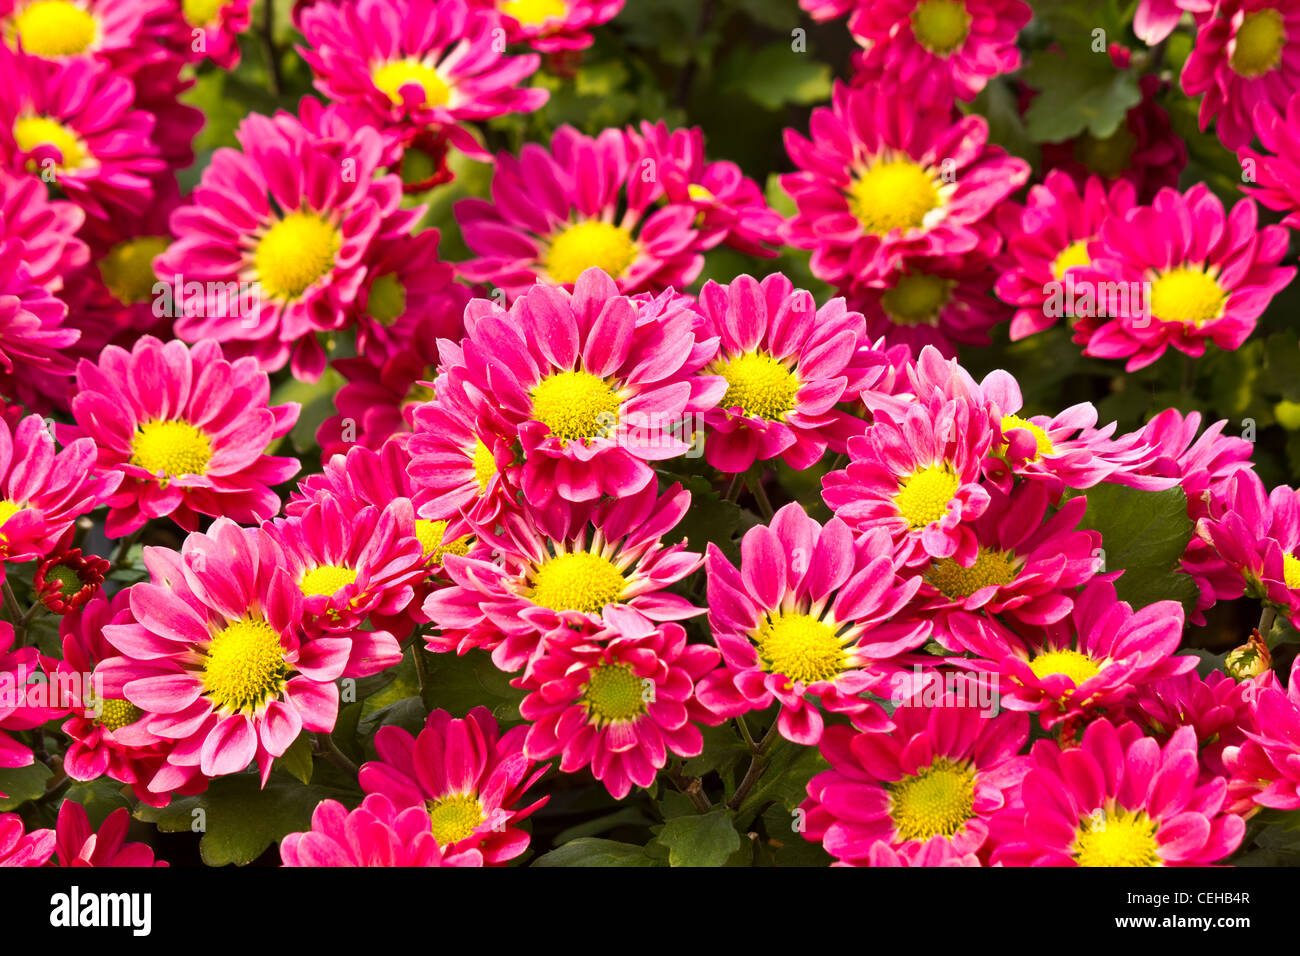 Pink Daisy Flowers In The Garden Background Stock Photo 43407863